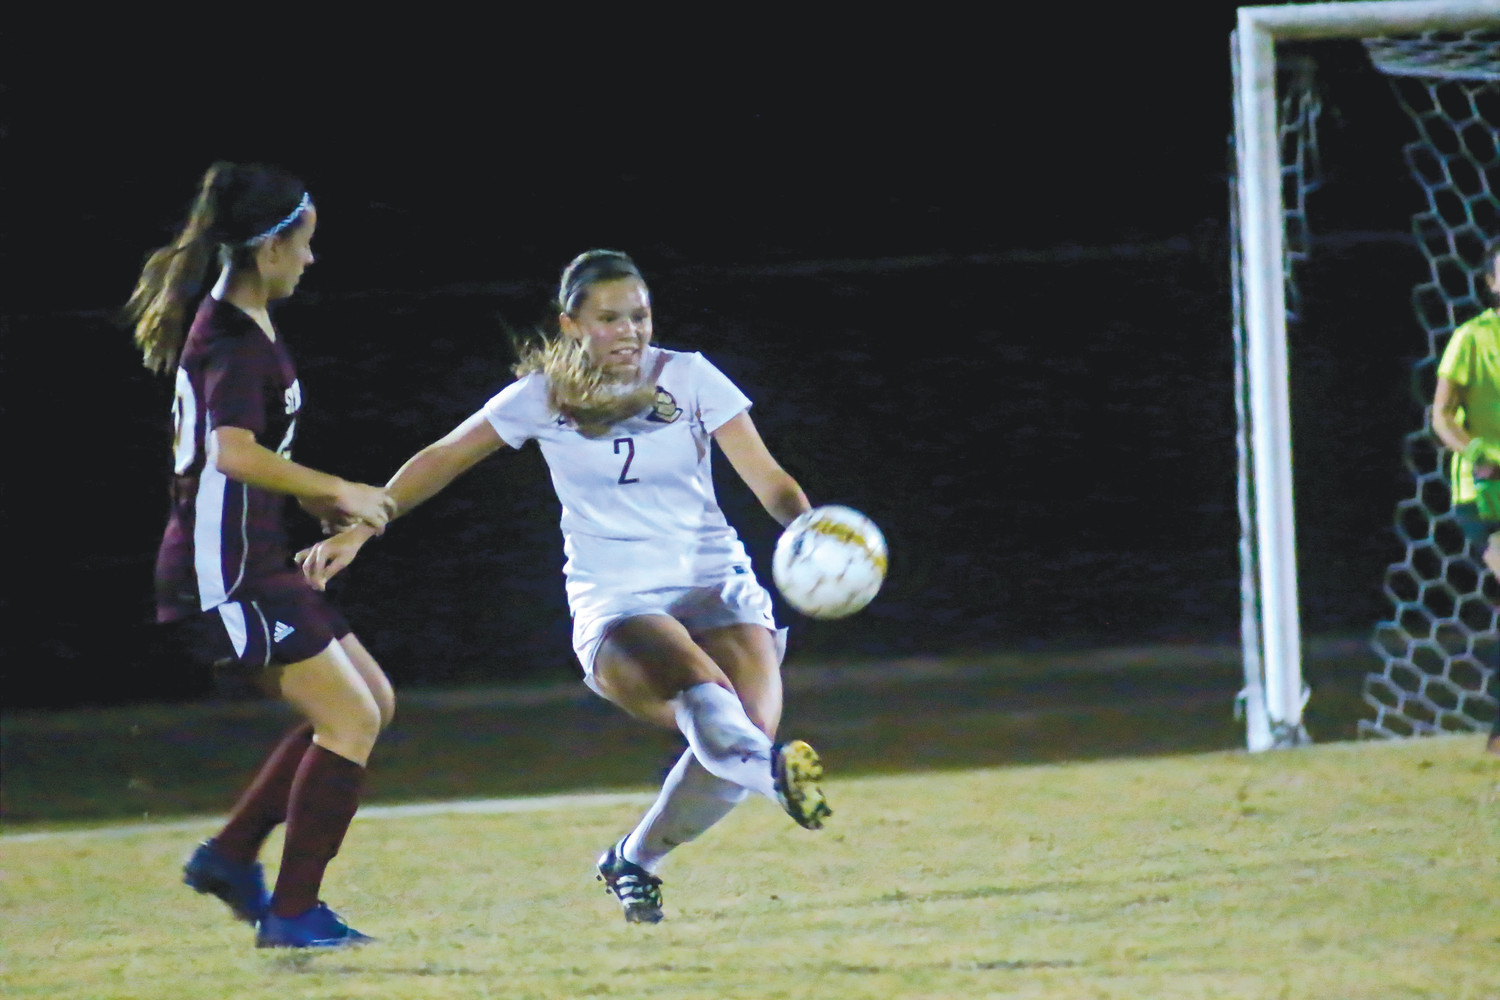 Oakleaf defender Meredith Bauman blasts St. Augustine ball out of Knights' defensive zone.